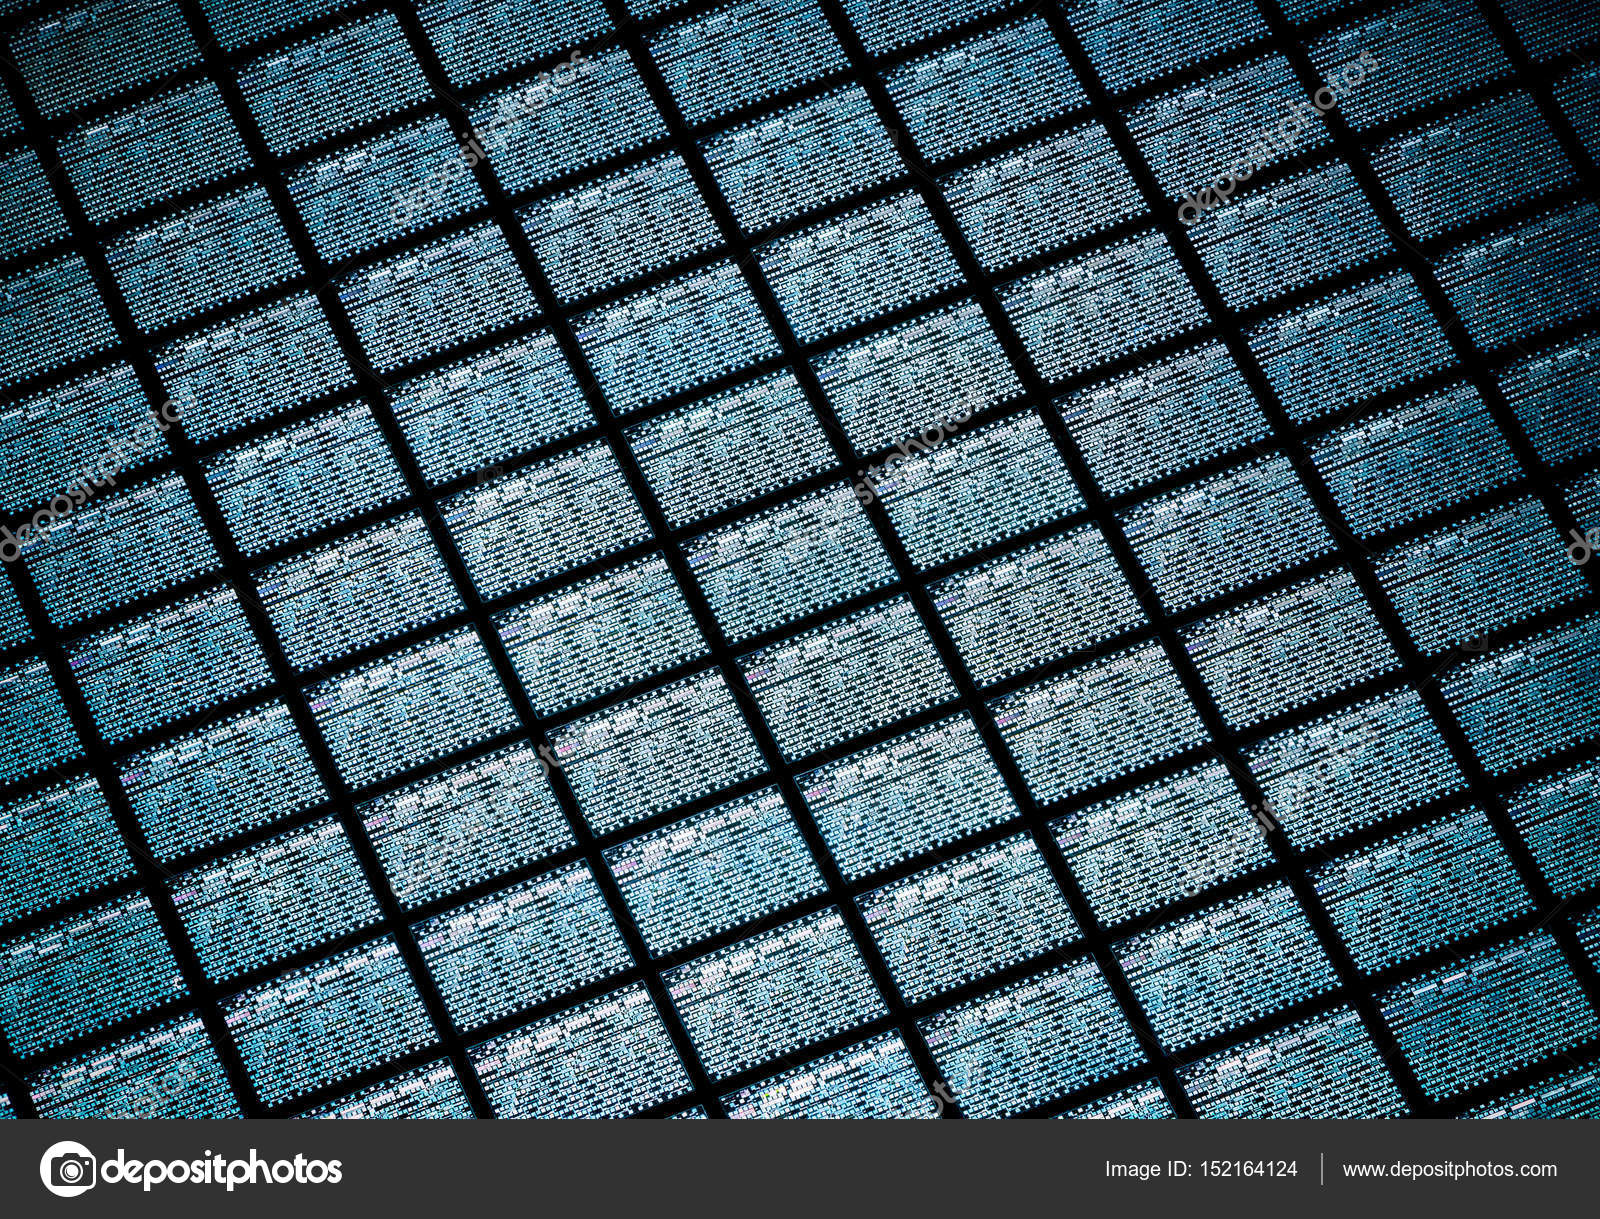 Detail of Silicon Wafer Containing Microchips — Stock Photo